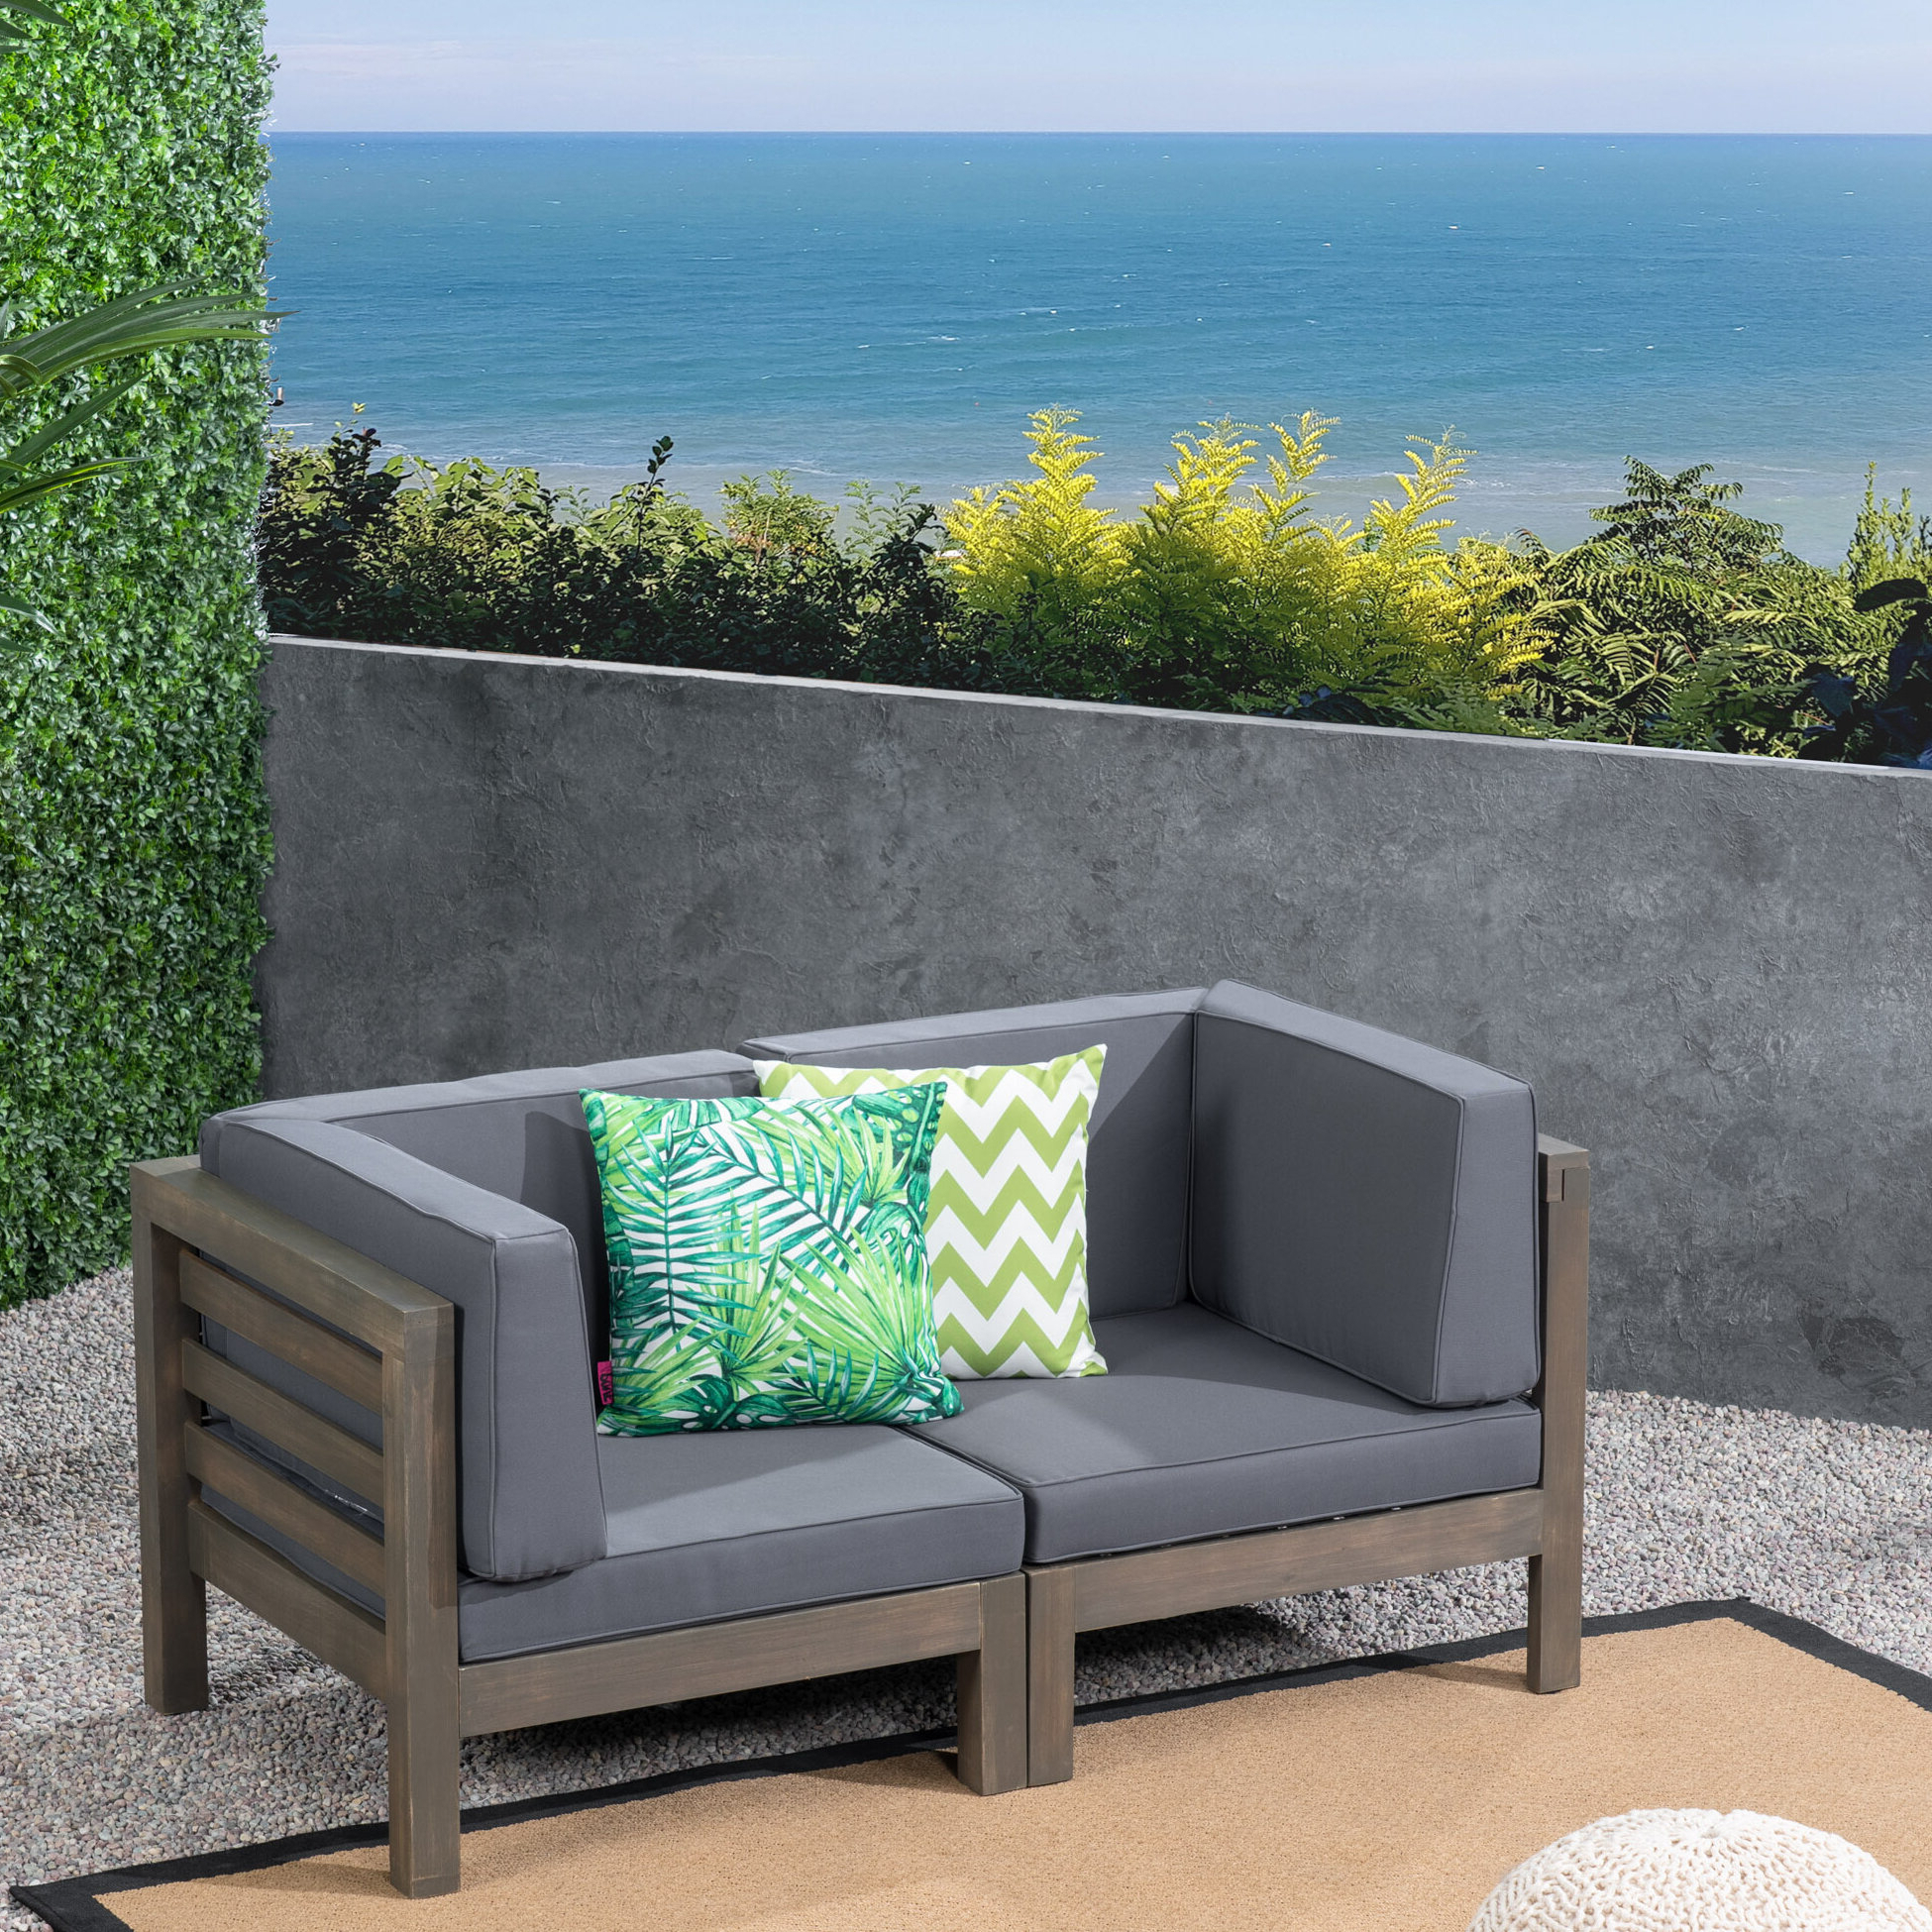 Seaham Loveseat With Cushions Within Widely Used Bullock Outdoor Wooden Loveseats With Cushions (View 10 of 20)